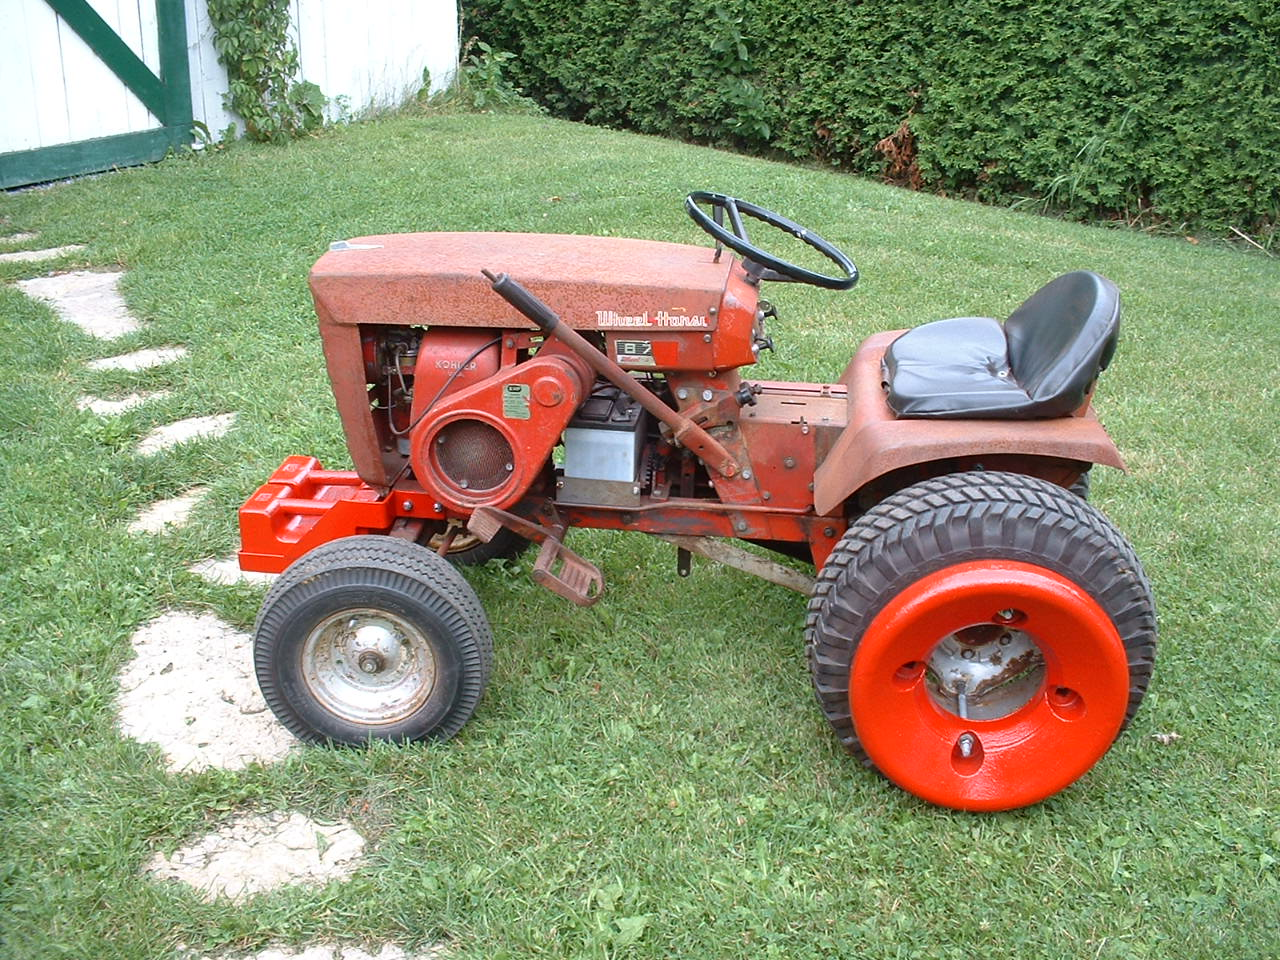 Wheel Horse Raider 12 Wiring Diagram Free For You Toro Ignition Switch 1972 Pictures To Pin On Pinterest Pinsdaddy Tractor Kohler Rectifier